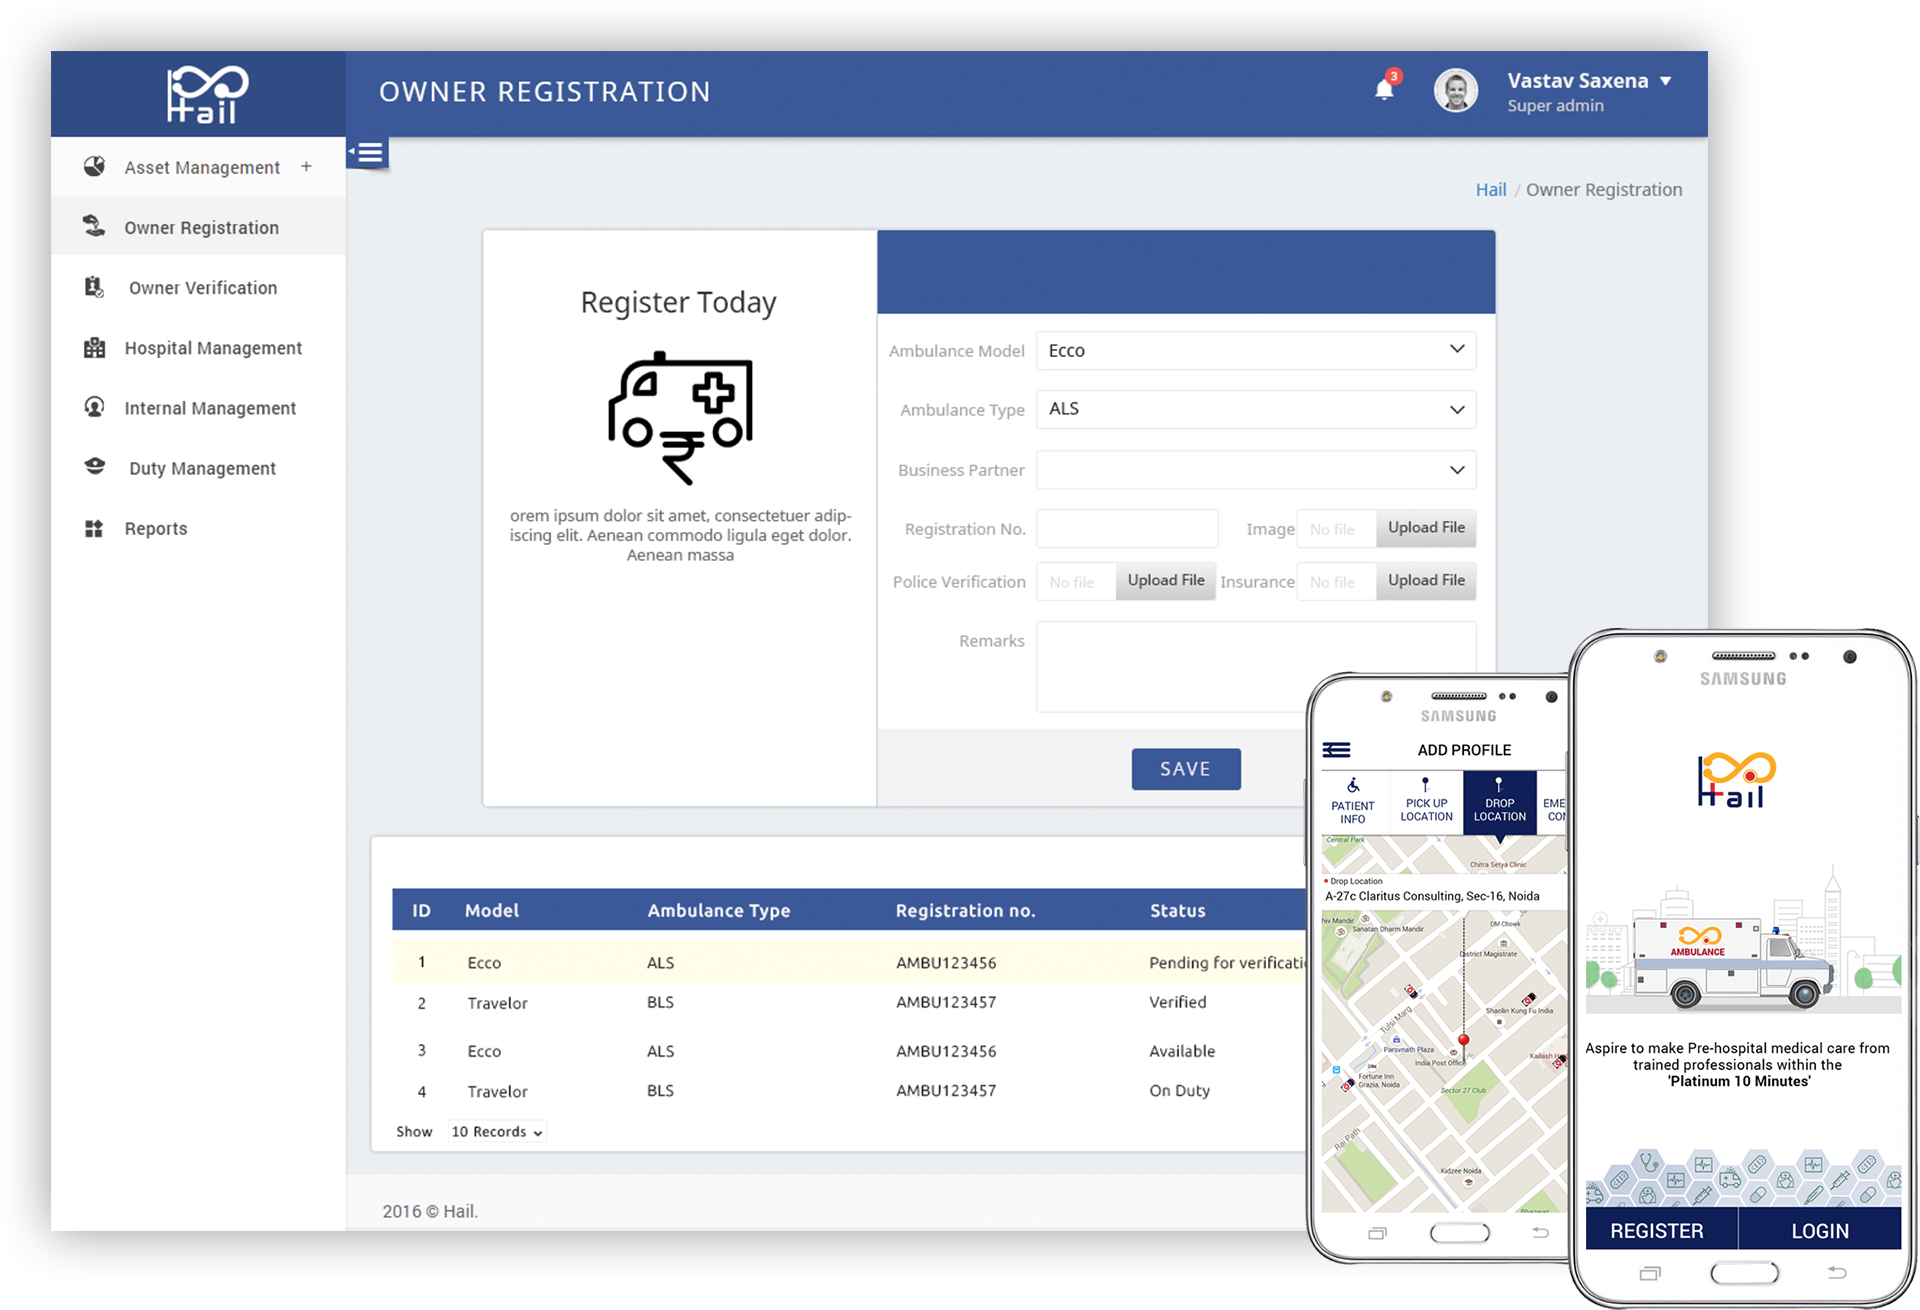 Emergency Embulance Booking Application